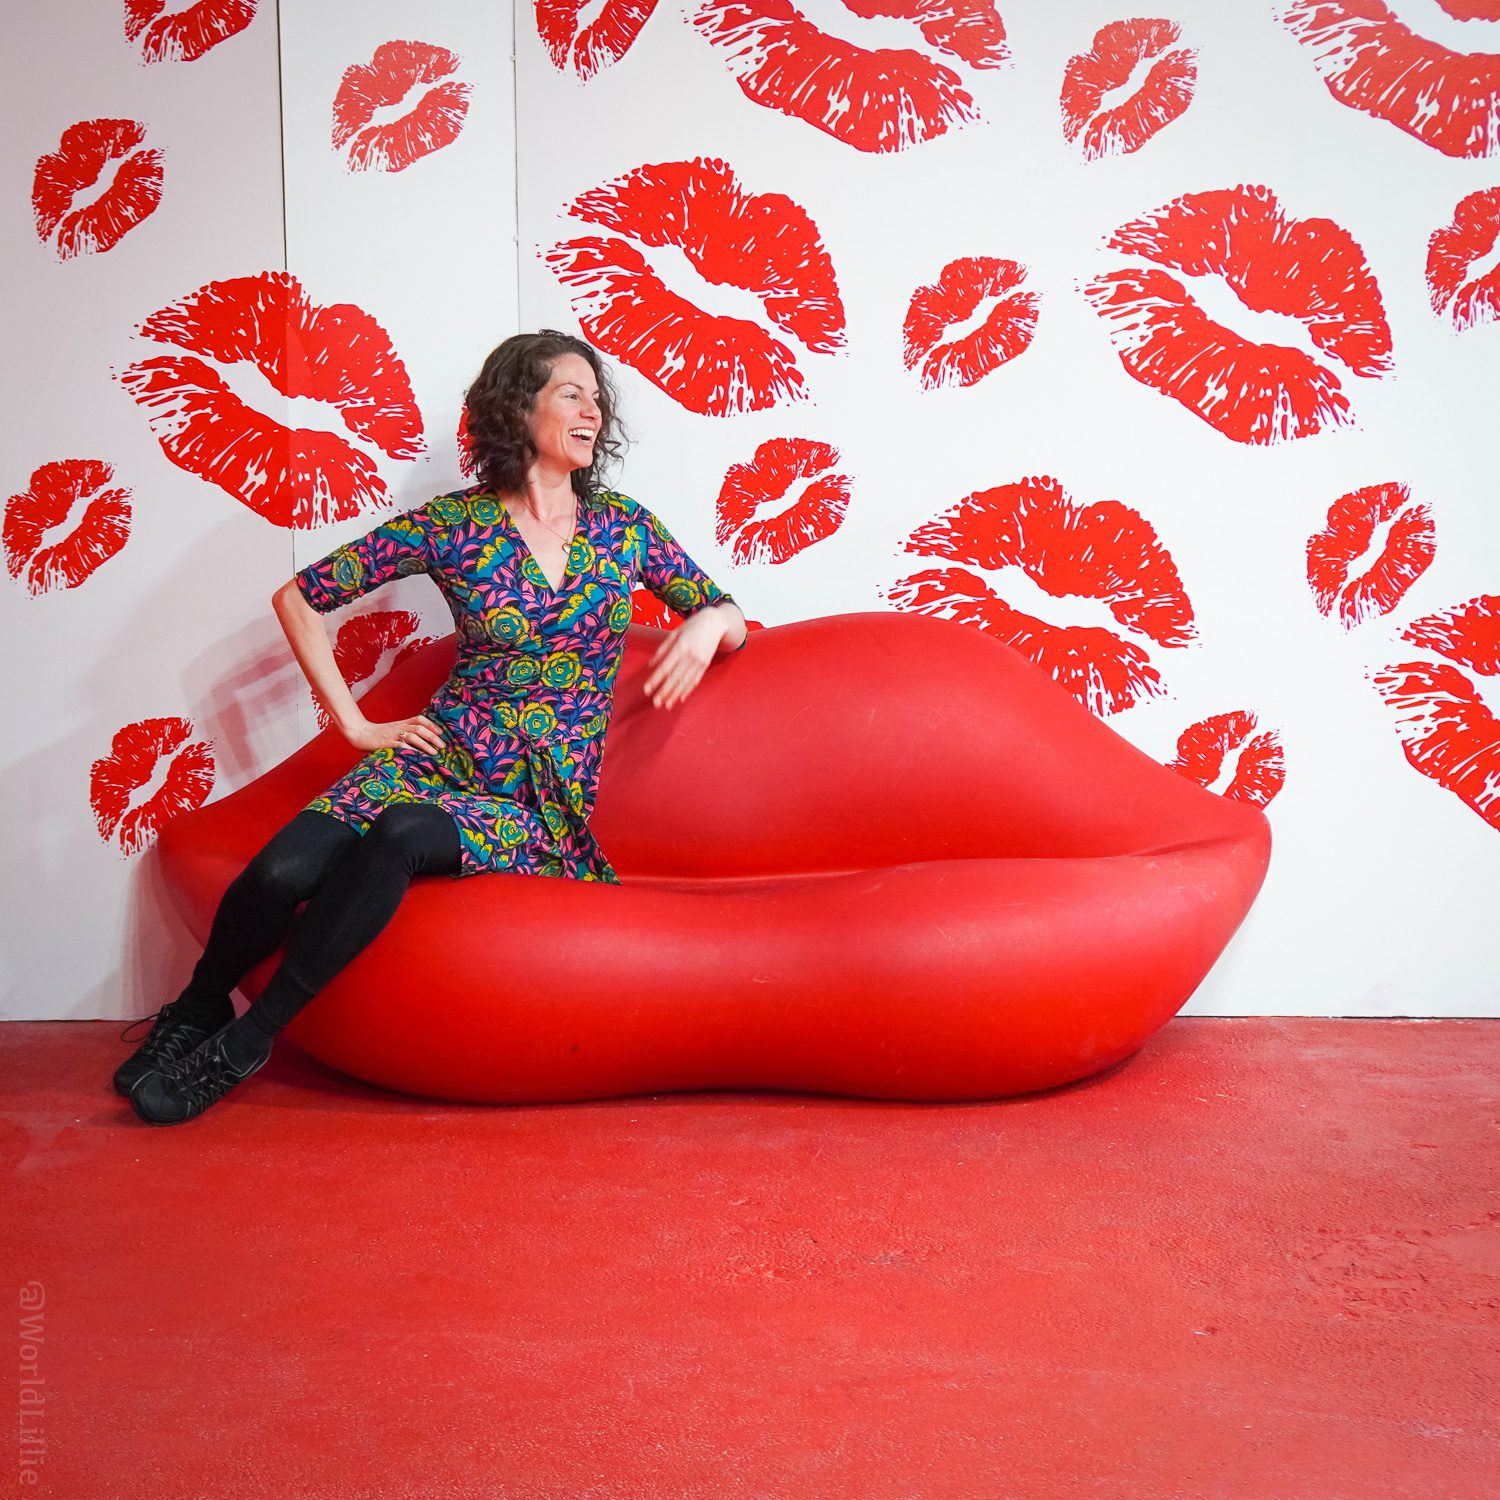 Sitting on a giant red lips couch...